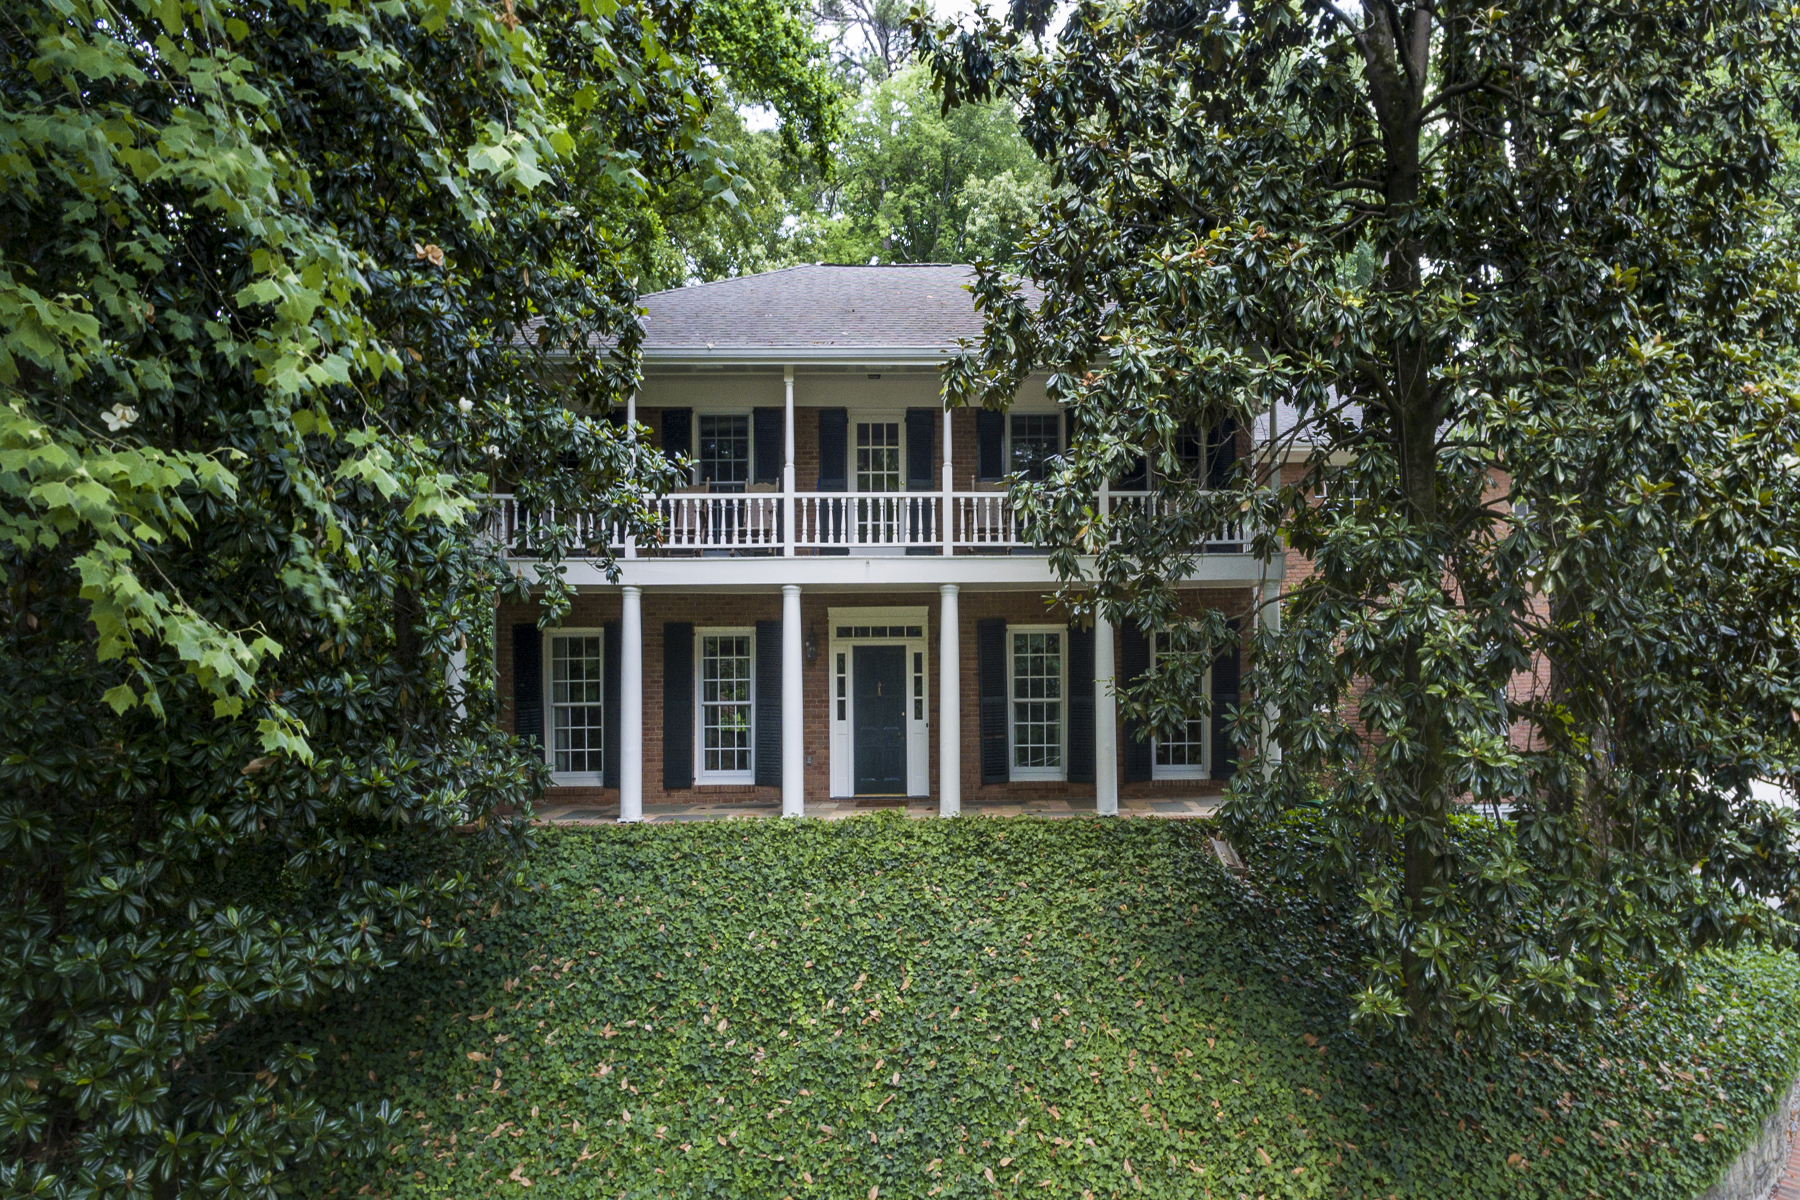 Single Family Home for Sale at Charming Home On One Of Buckhead's Most Sought After Quiet Streets 3100 E Pine Valley Road NW Buckhead, Atlanta, Georgia, 30305 United States